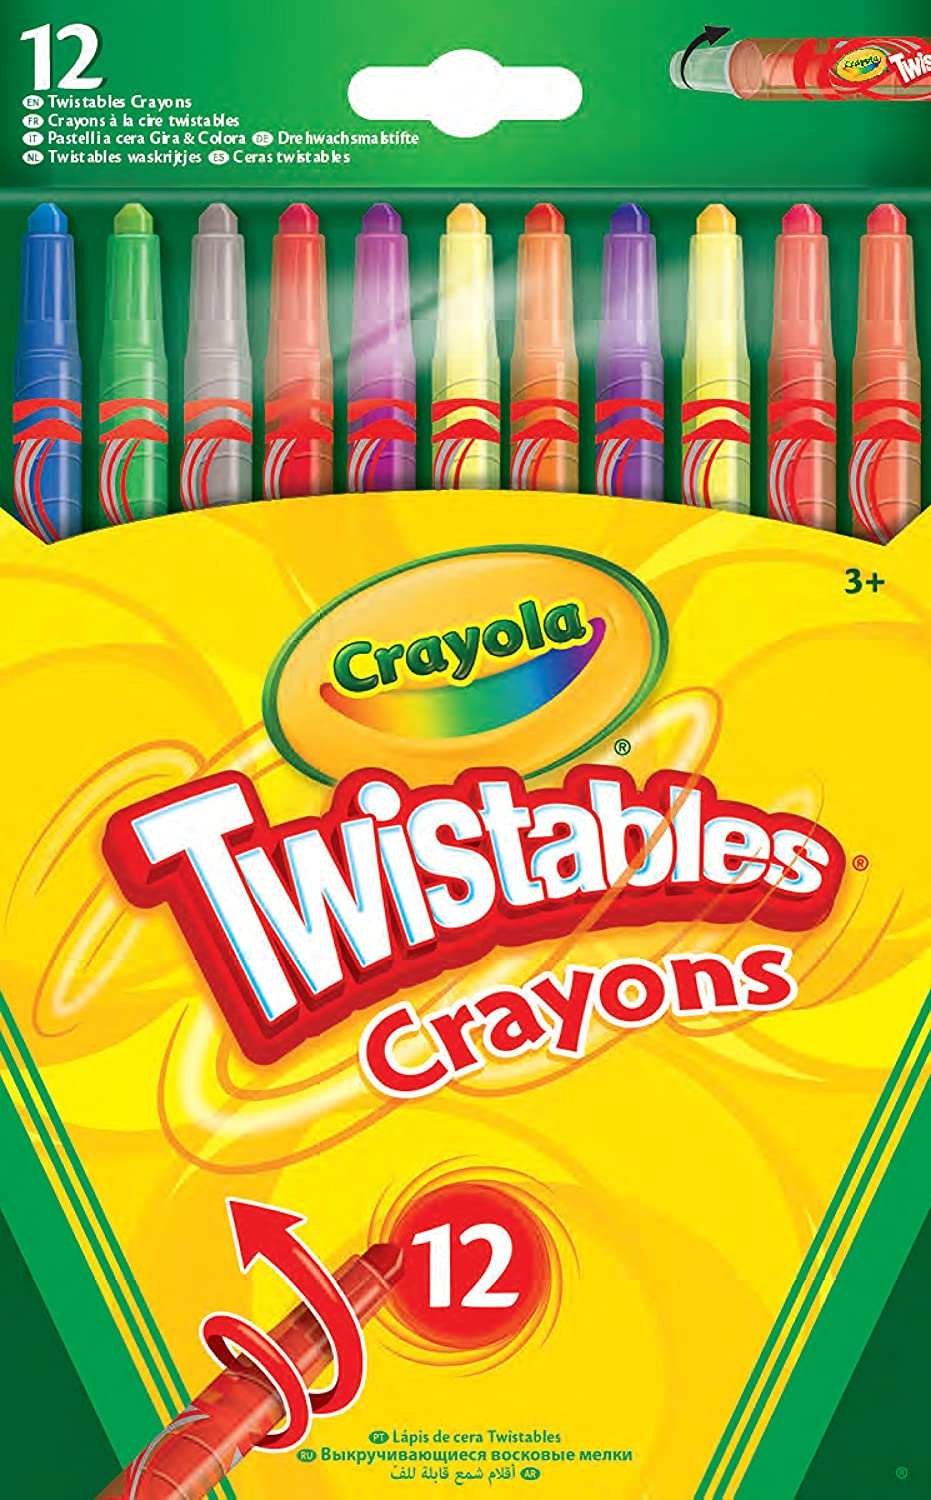 Department store Vivid Imaginations Crayola Twistable Crayons Max 82% OFF 12 pack Multi- Of